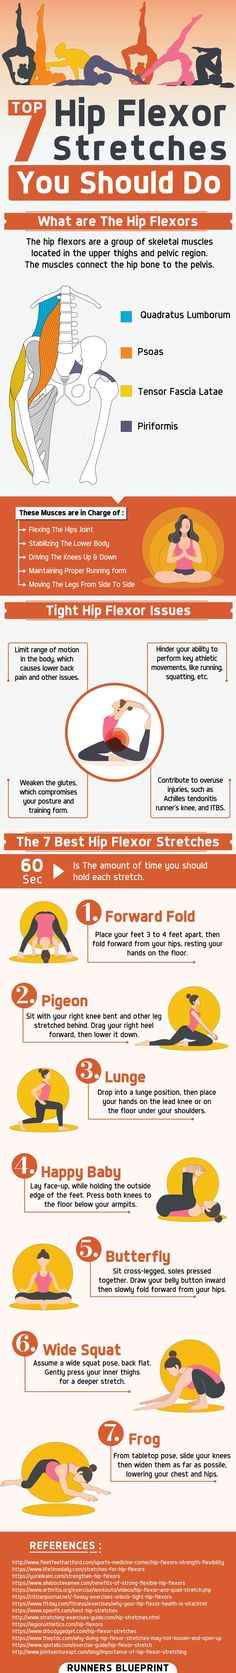 The 7 Hip Flexors Stretches You Should Be Doing — Runners Blueprint Running For Beginners, How To Start Running, Running Tips, Stretches For Runners, Hip Stretches, Stretching Exercises, The Bo, Best Cardio Workout, Workout Routines